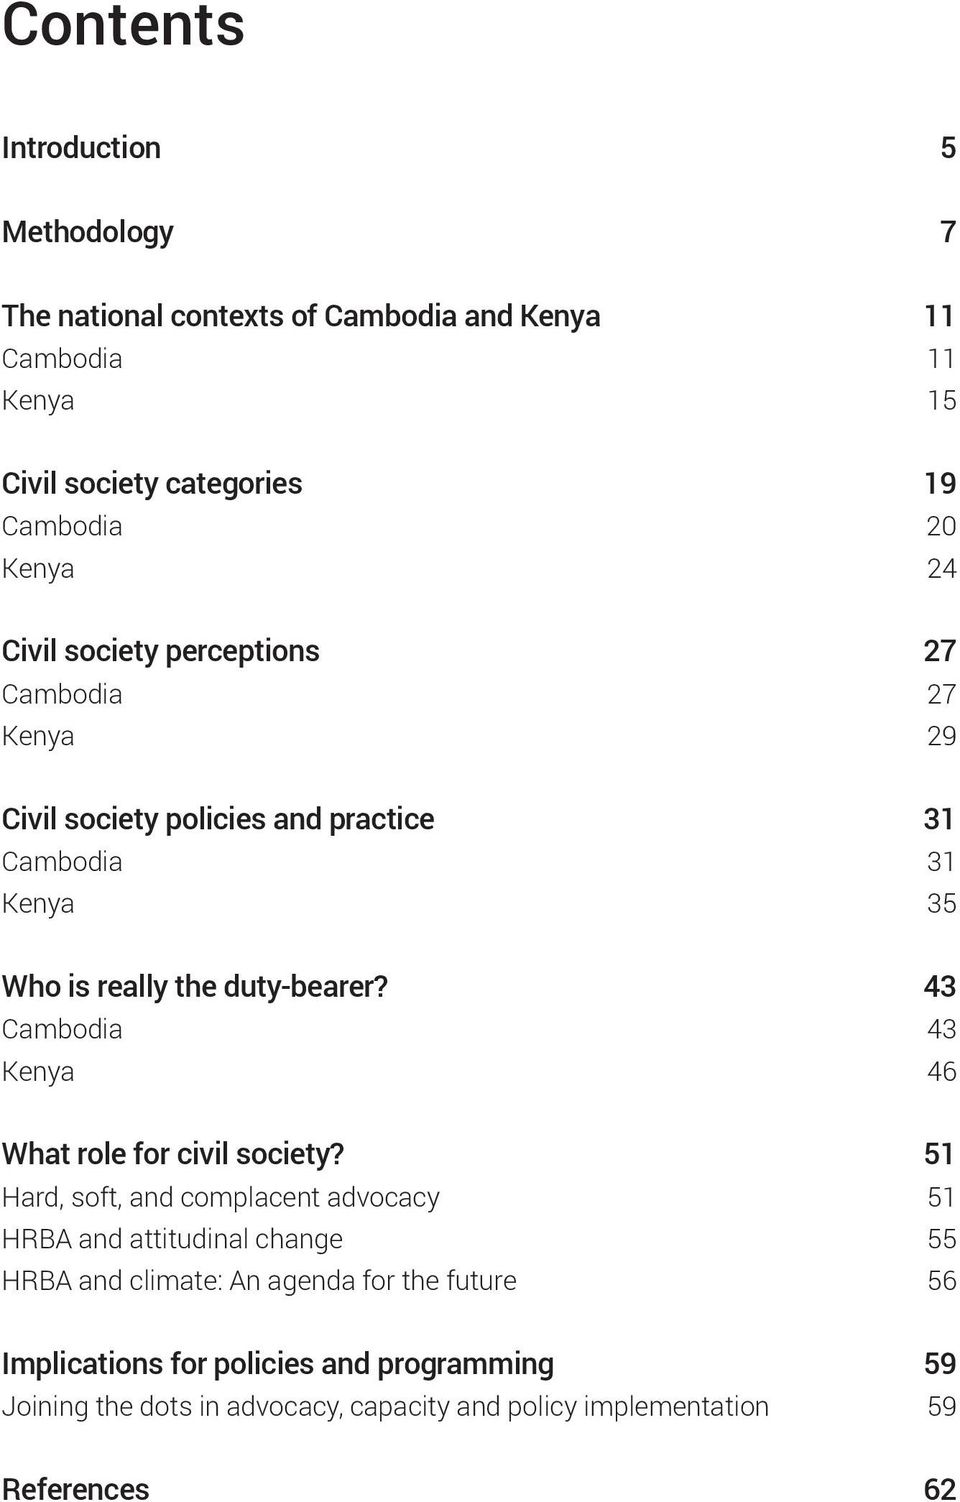 43 Cambodia 43 Kenya 46 What role for civil society?